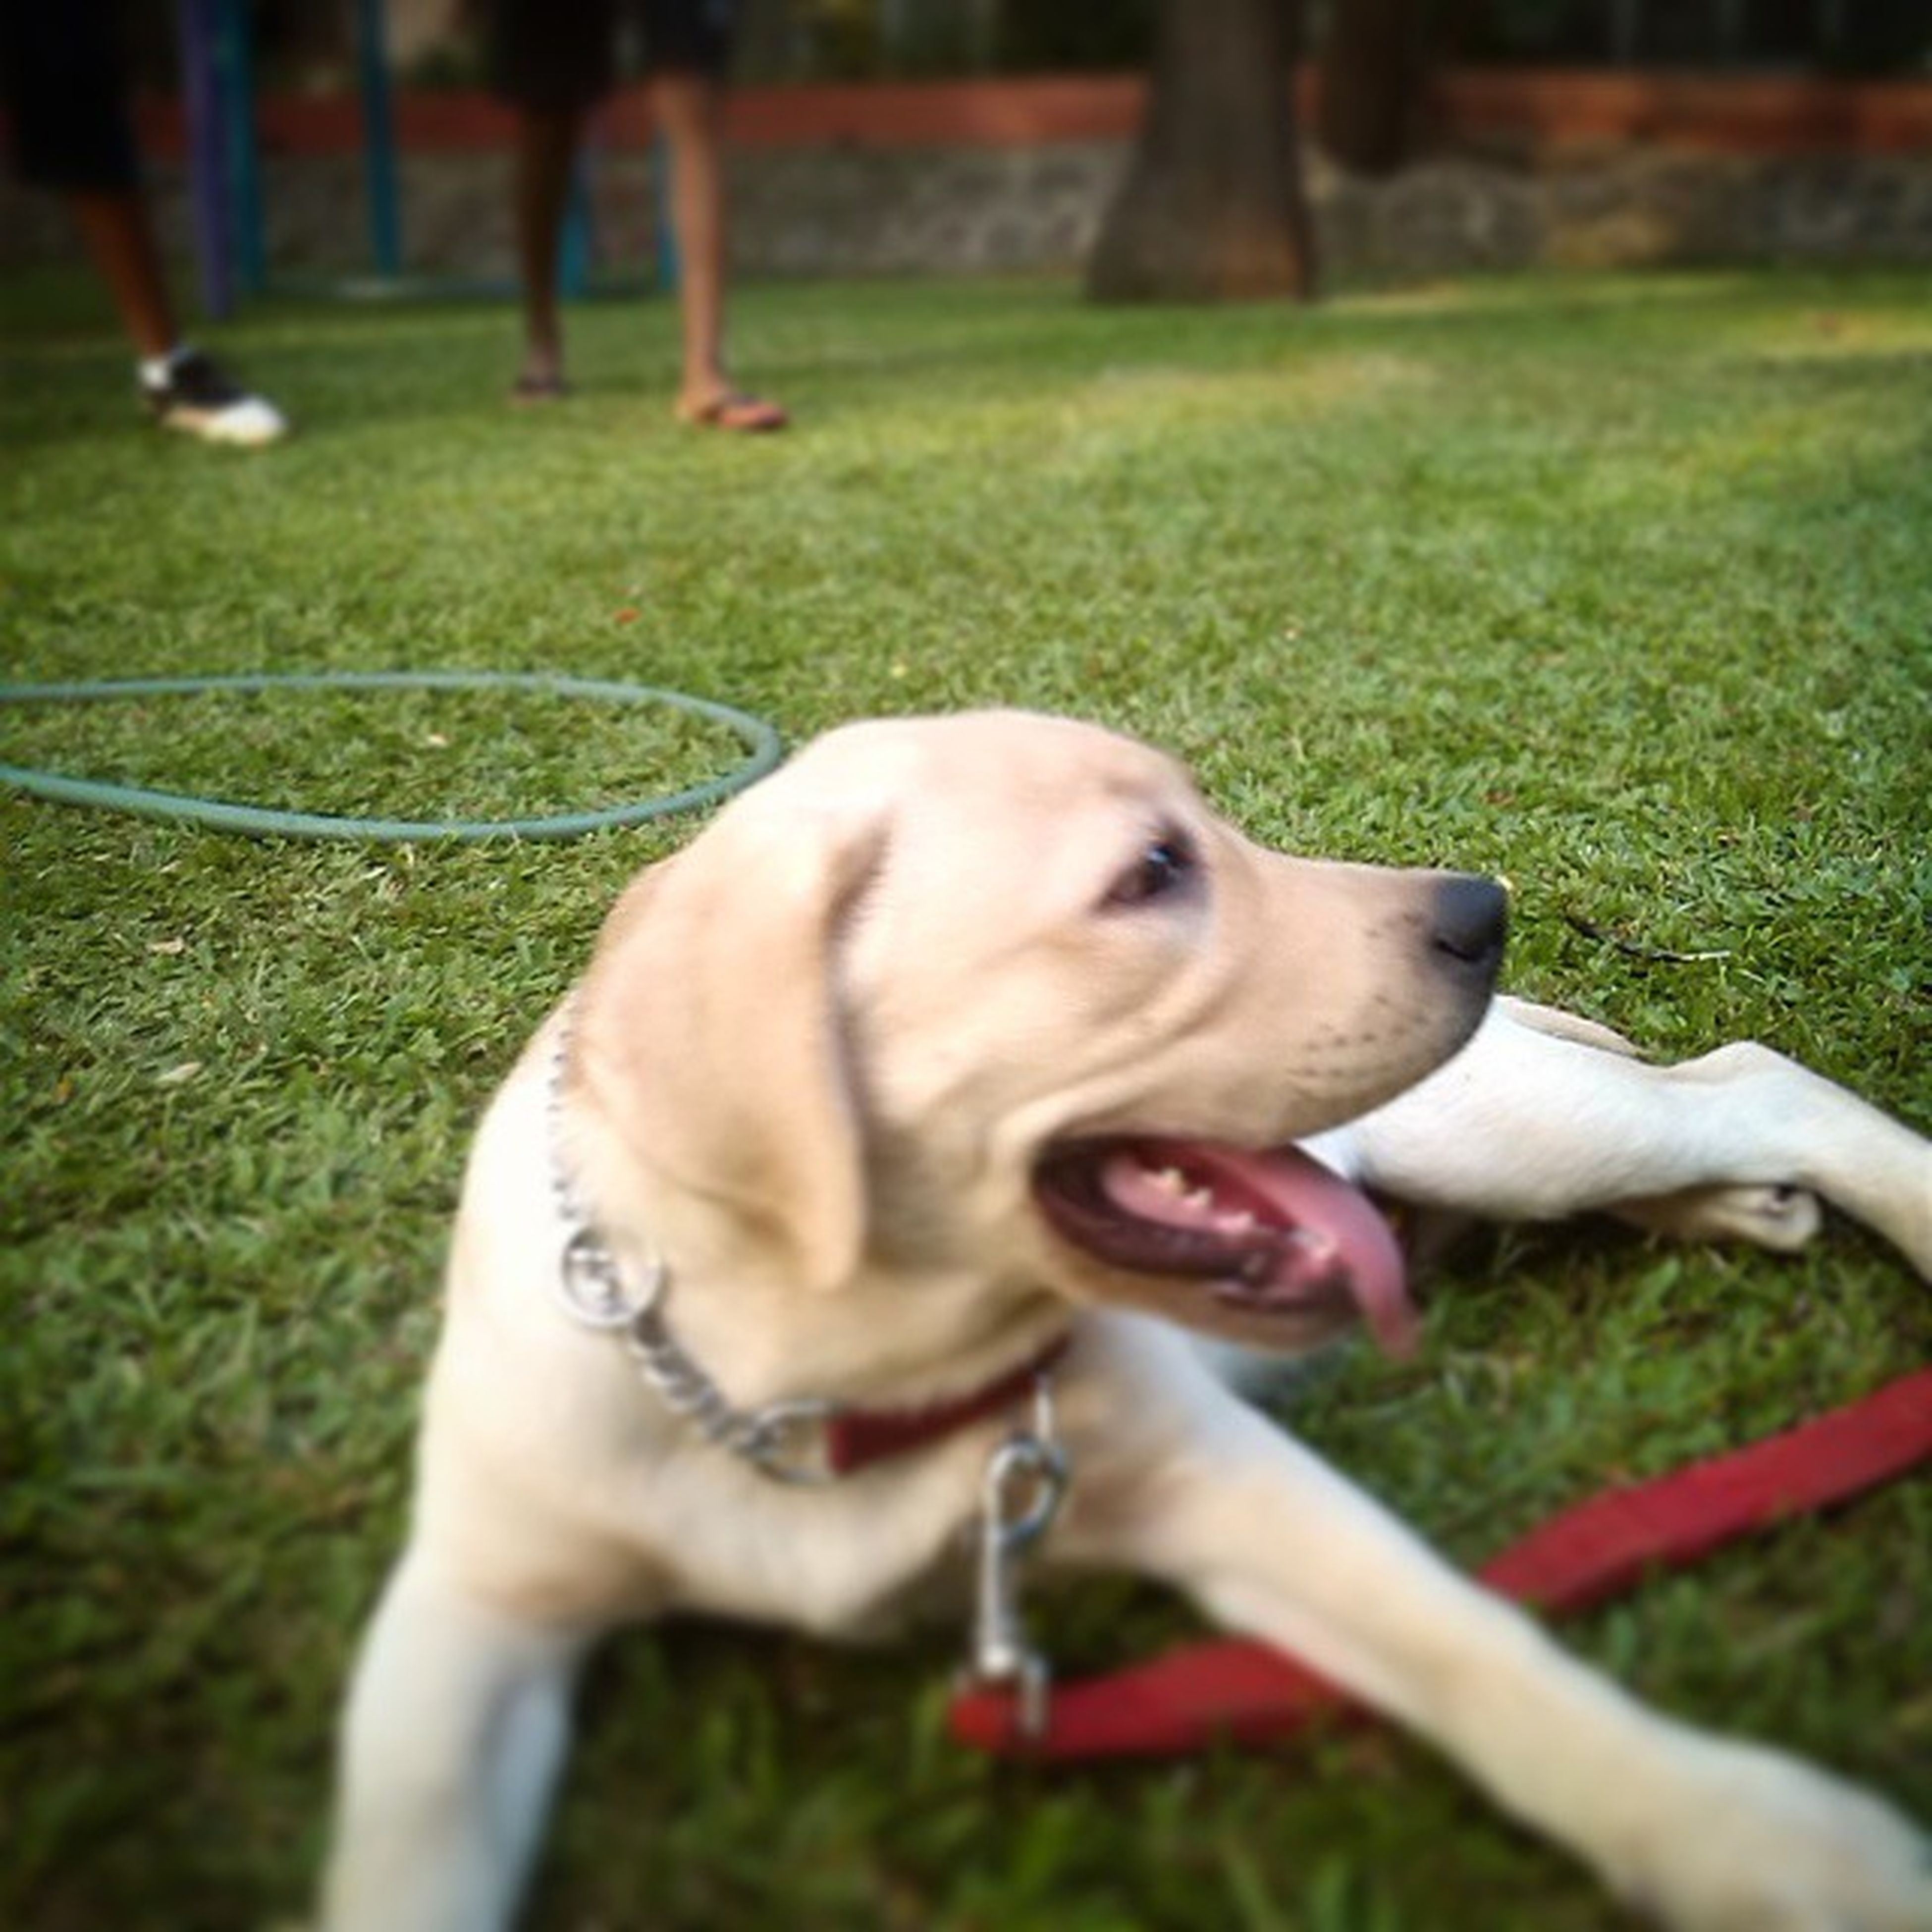 pets, dog, animal themes, domestic animals, mammal, one animal, person, grass, holding, pet owner, field, leisure activity, lifestyles, focus on foreground, playing, unrecognizable person, part of